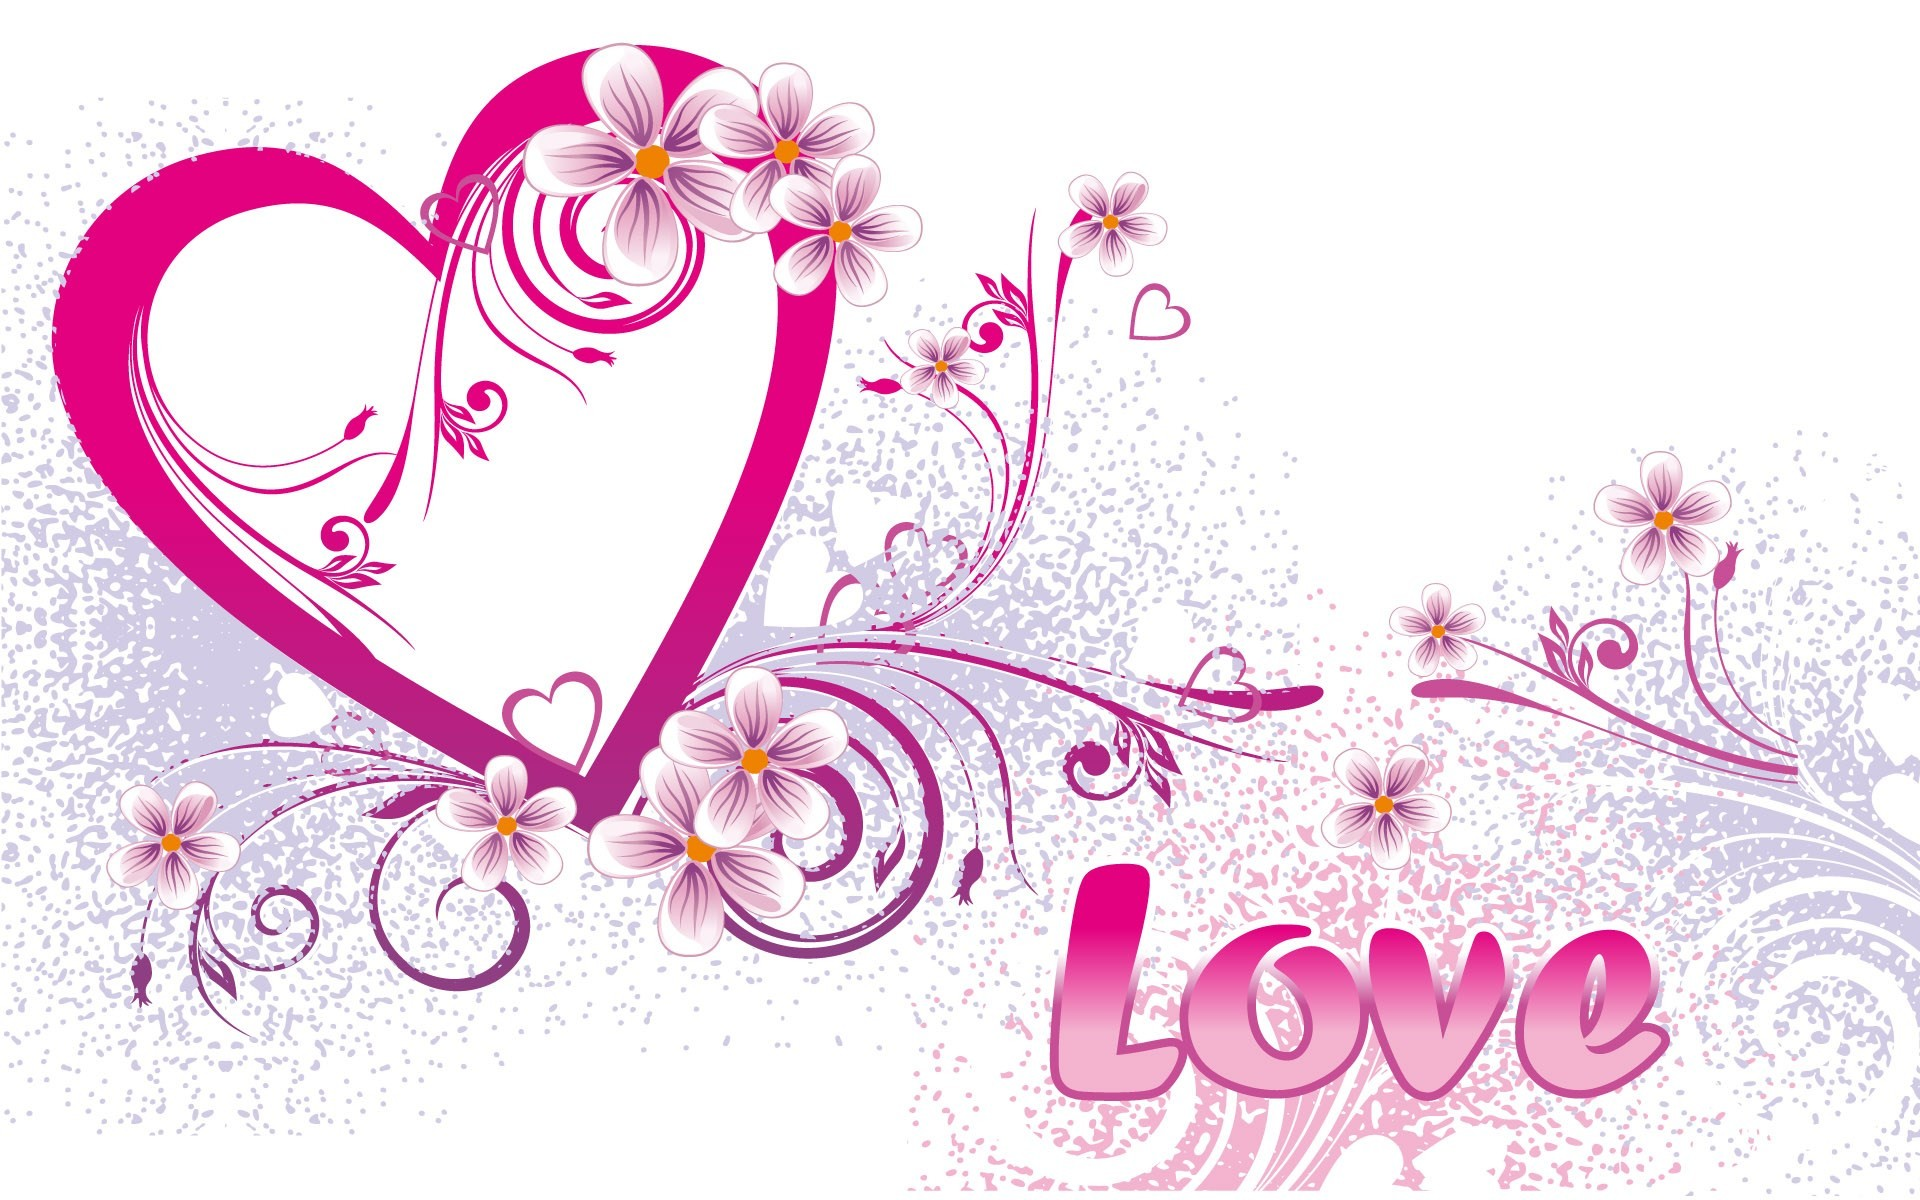 valentines day free wallpaper and screensavers. valentines day pc  backgrounds hd free